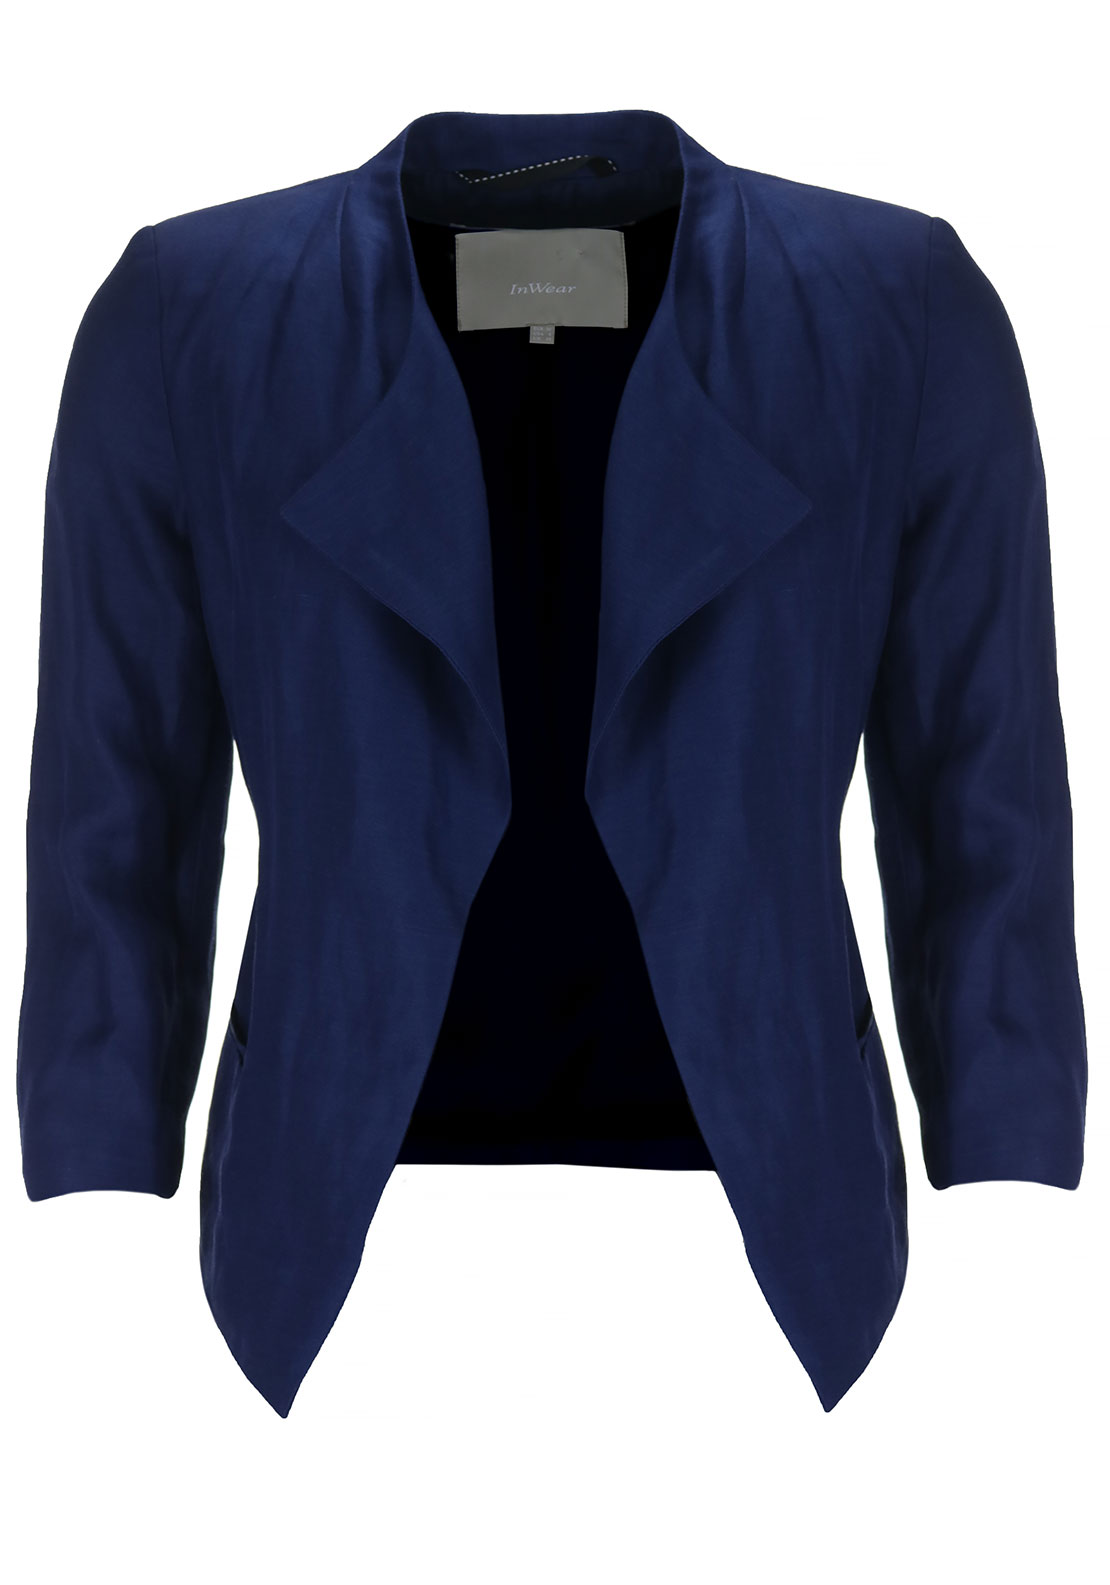 Inwear Demi Linen Rich Jacket, Deep Blue